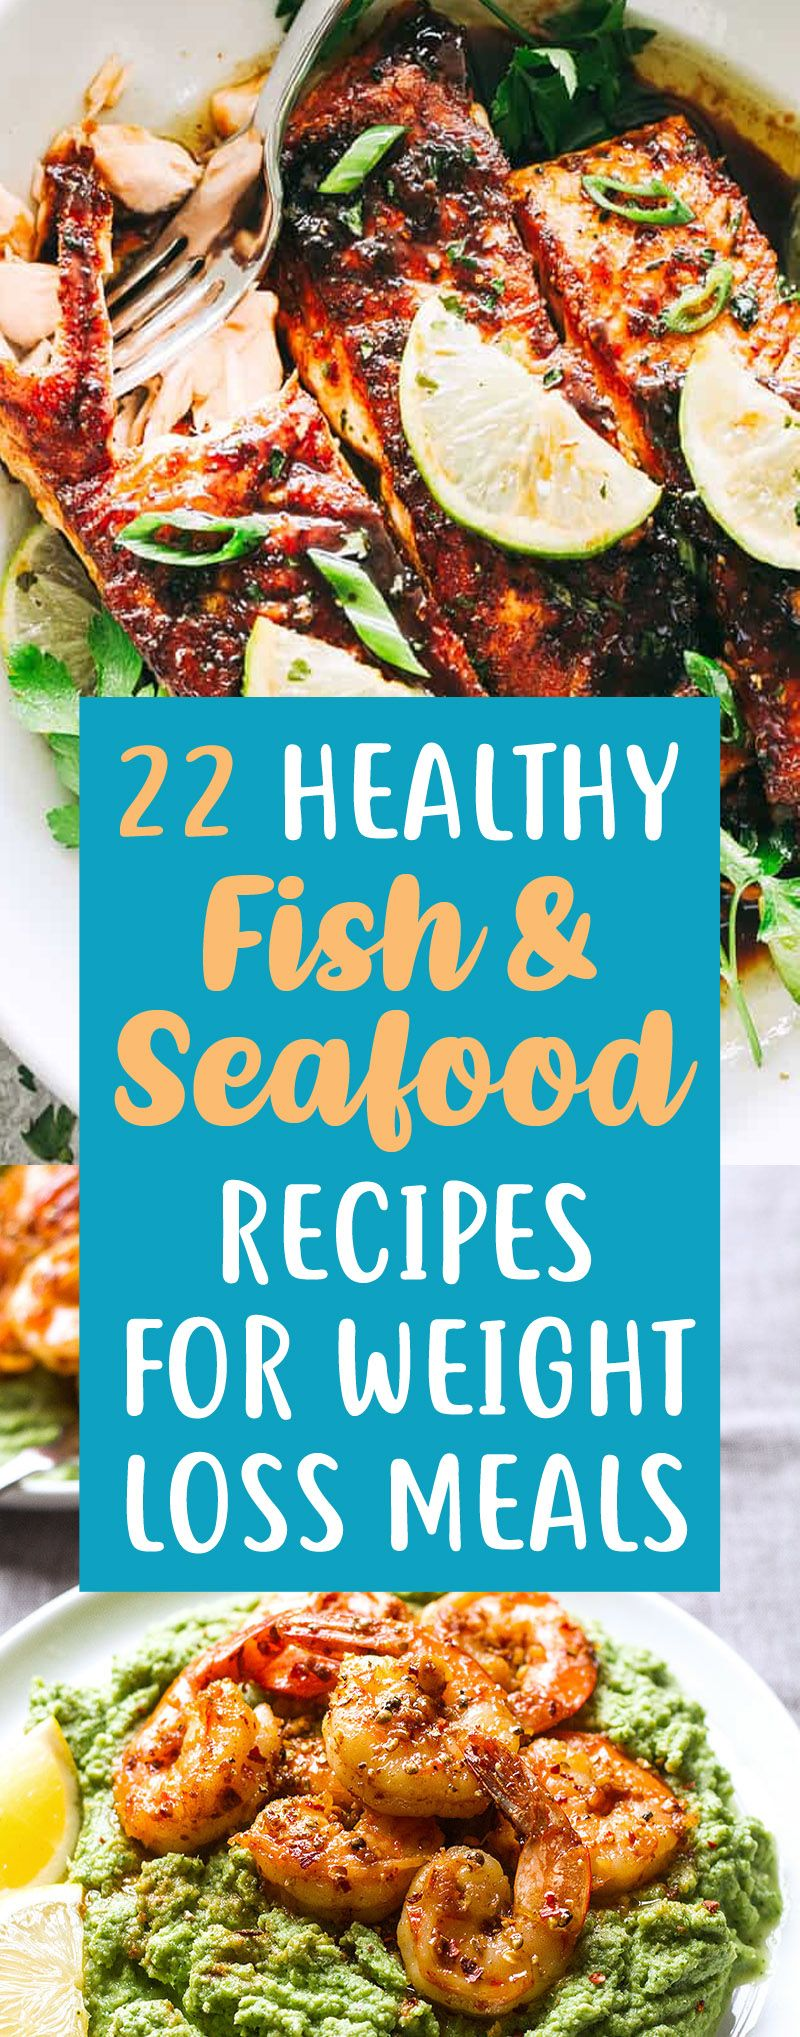 22 Fish & Seafood Recipes That Make An Easy Delicious Weight Loss Dinner! images